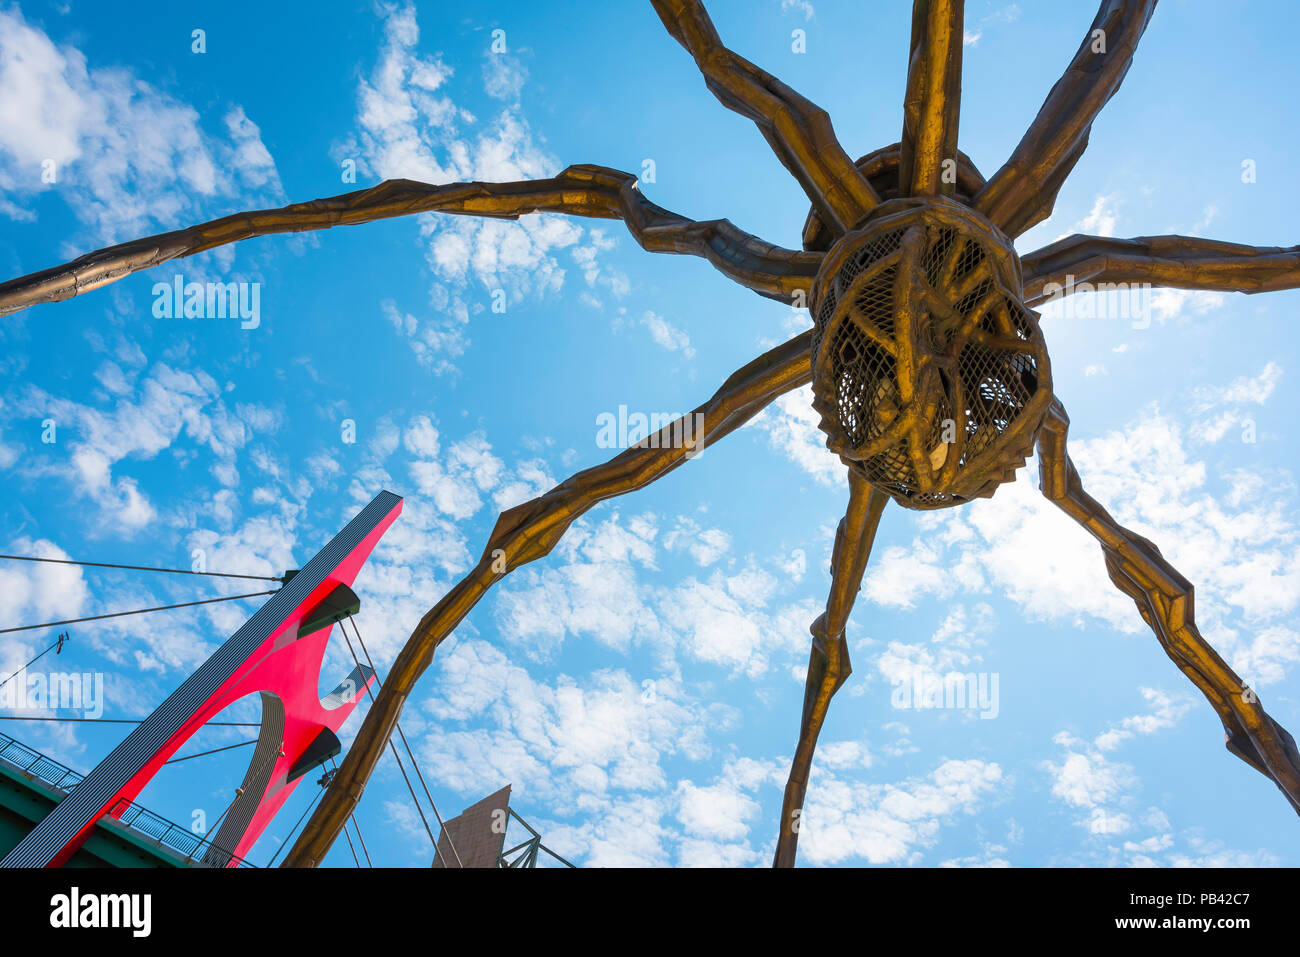 Bilbao Spain city, view of the underside of the Louise Bourgeois designed huge bronze spider (Maman) beside the Guggenheim Museum in Bilbao, Spain. - Stock Image